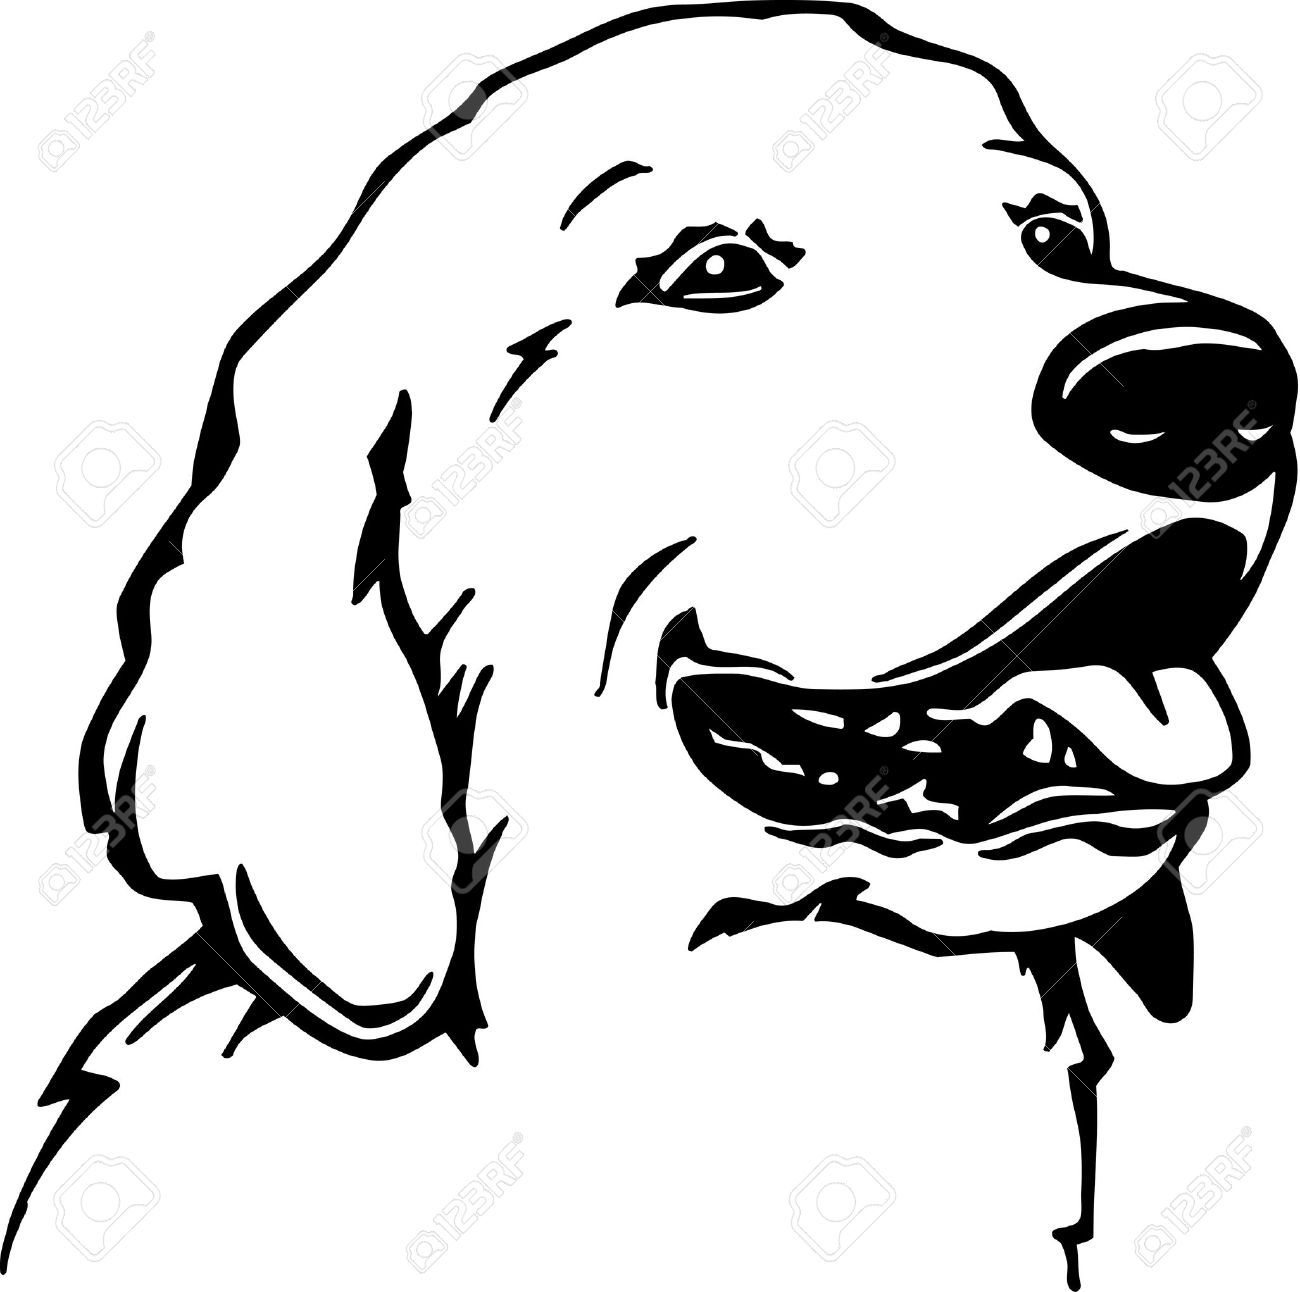 Golden Retriever Silhouette Clip Art At Getdrawings Com Free For